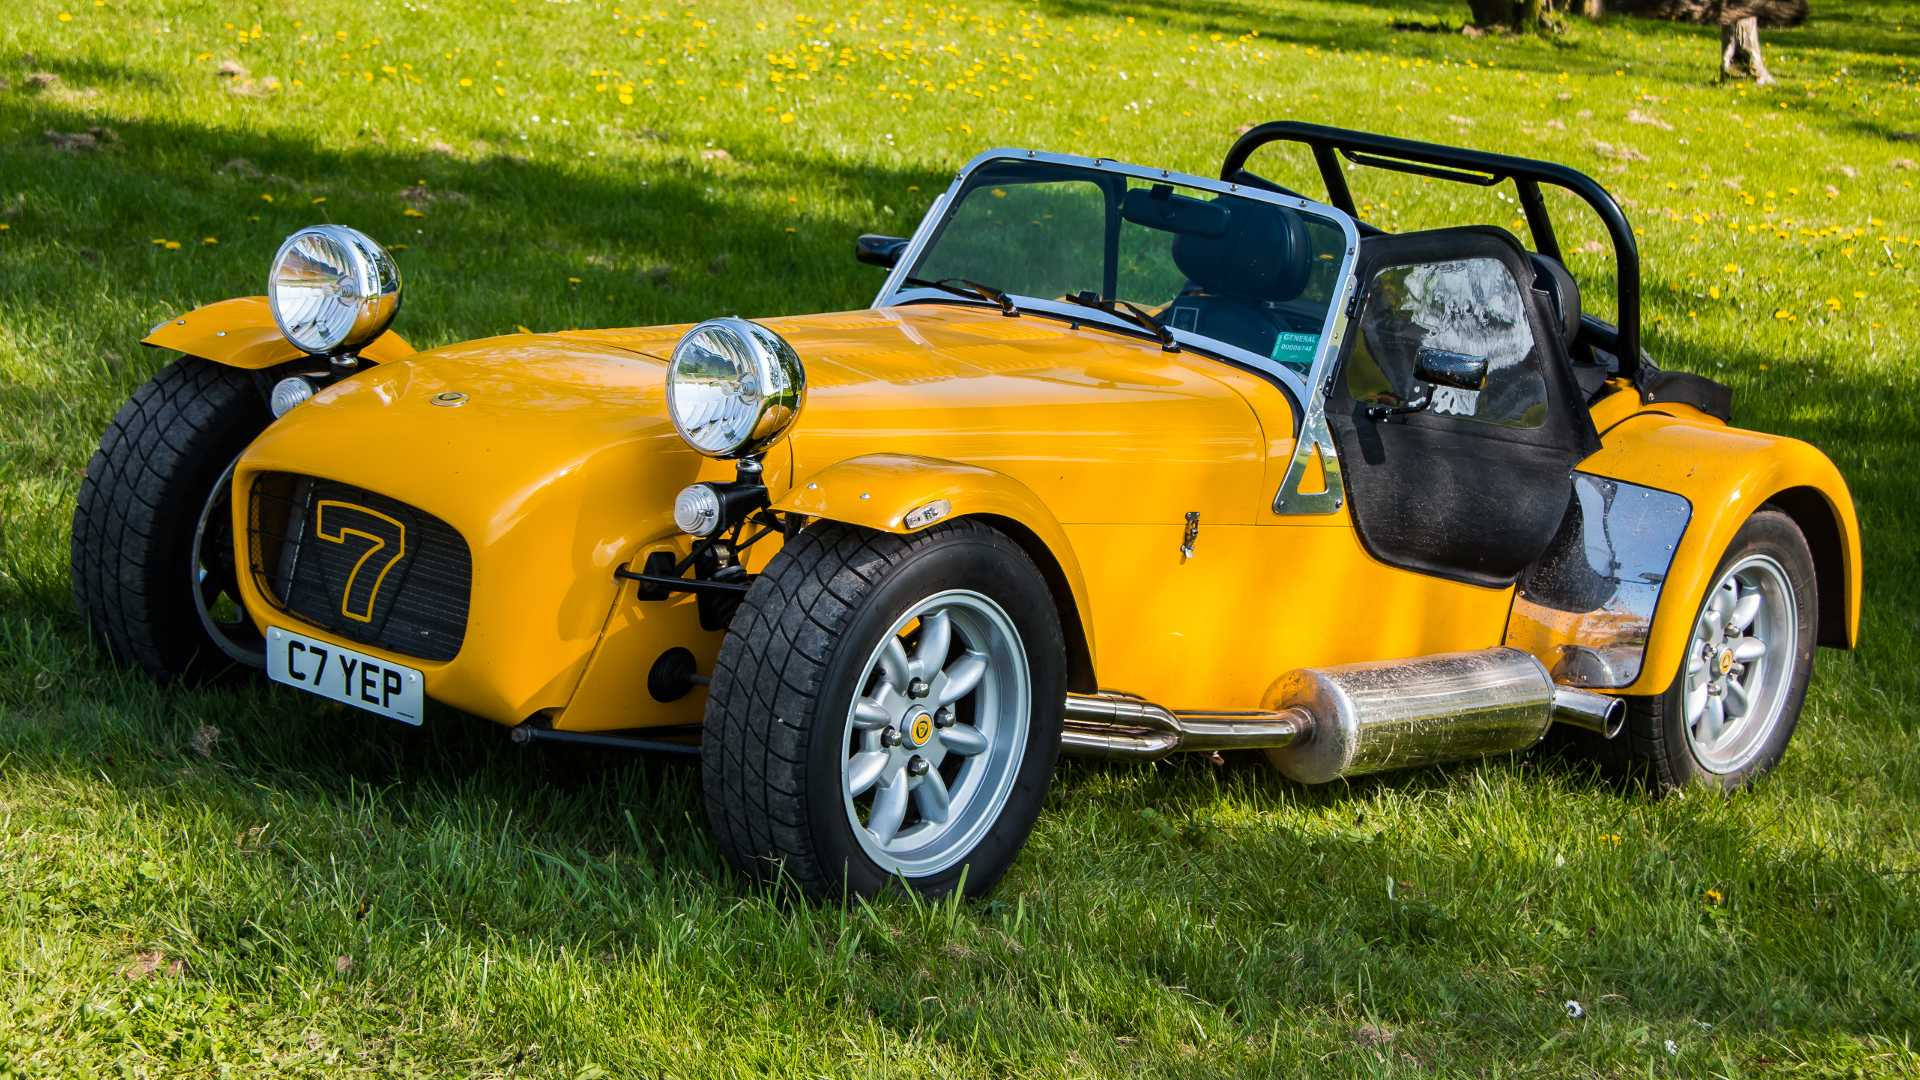 Caterham offers new finance deals for new and used Sevens